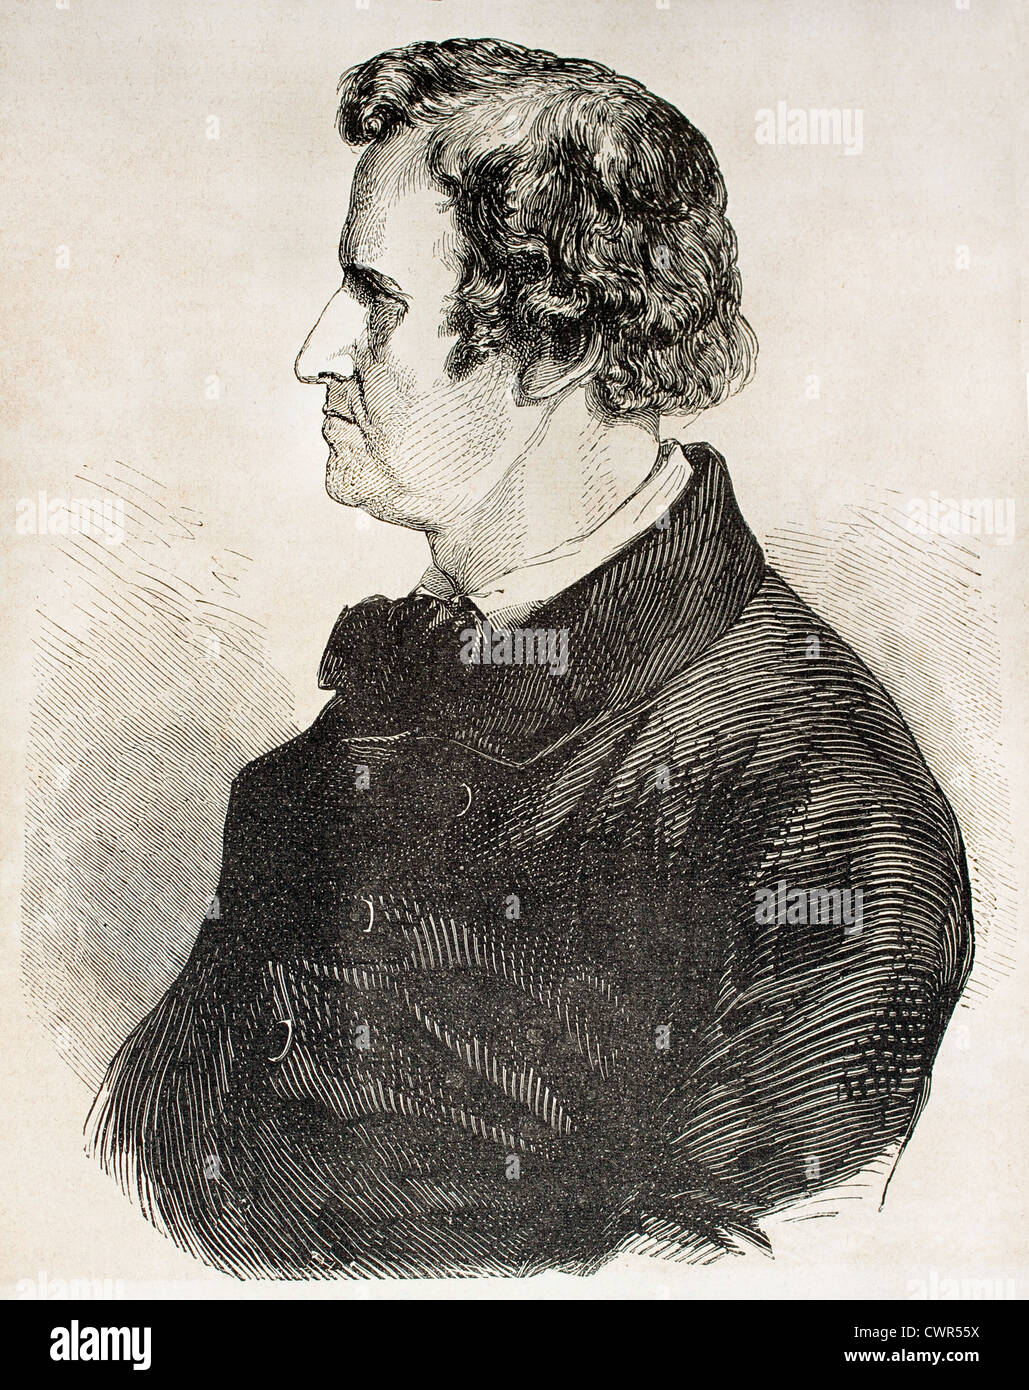 Old engraved portrait of Rauch - Stock Image